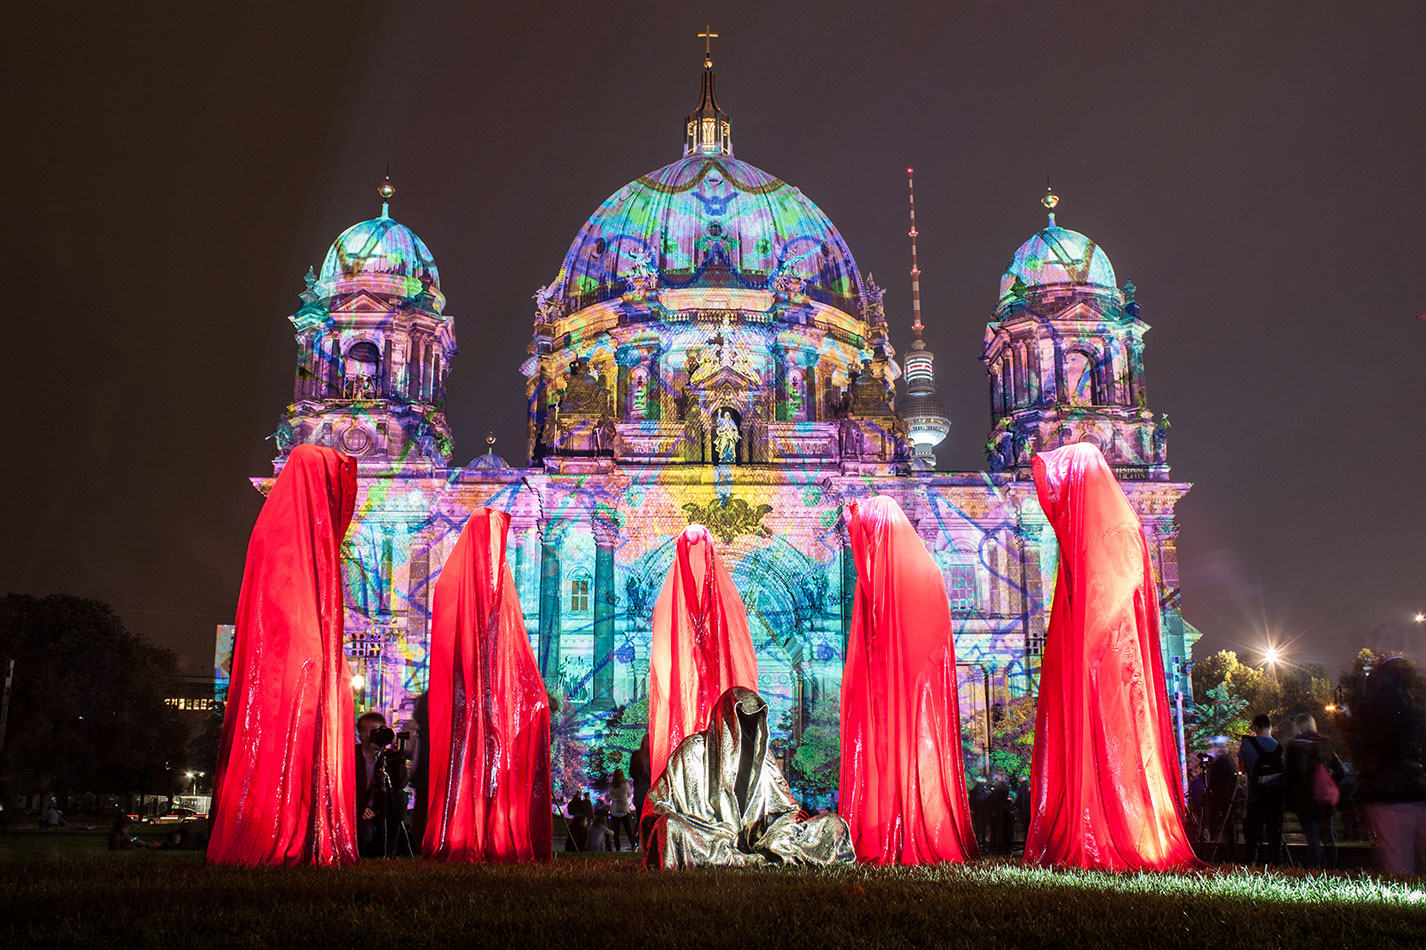 festival-of-lights-old-museum-cathedral-berlin-light-art-show-exhibition-lumina-guardians-of-time-manfred-kili-kielnhofer-contemporary-arts-design-sculpture-3054